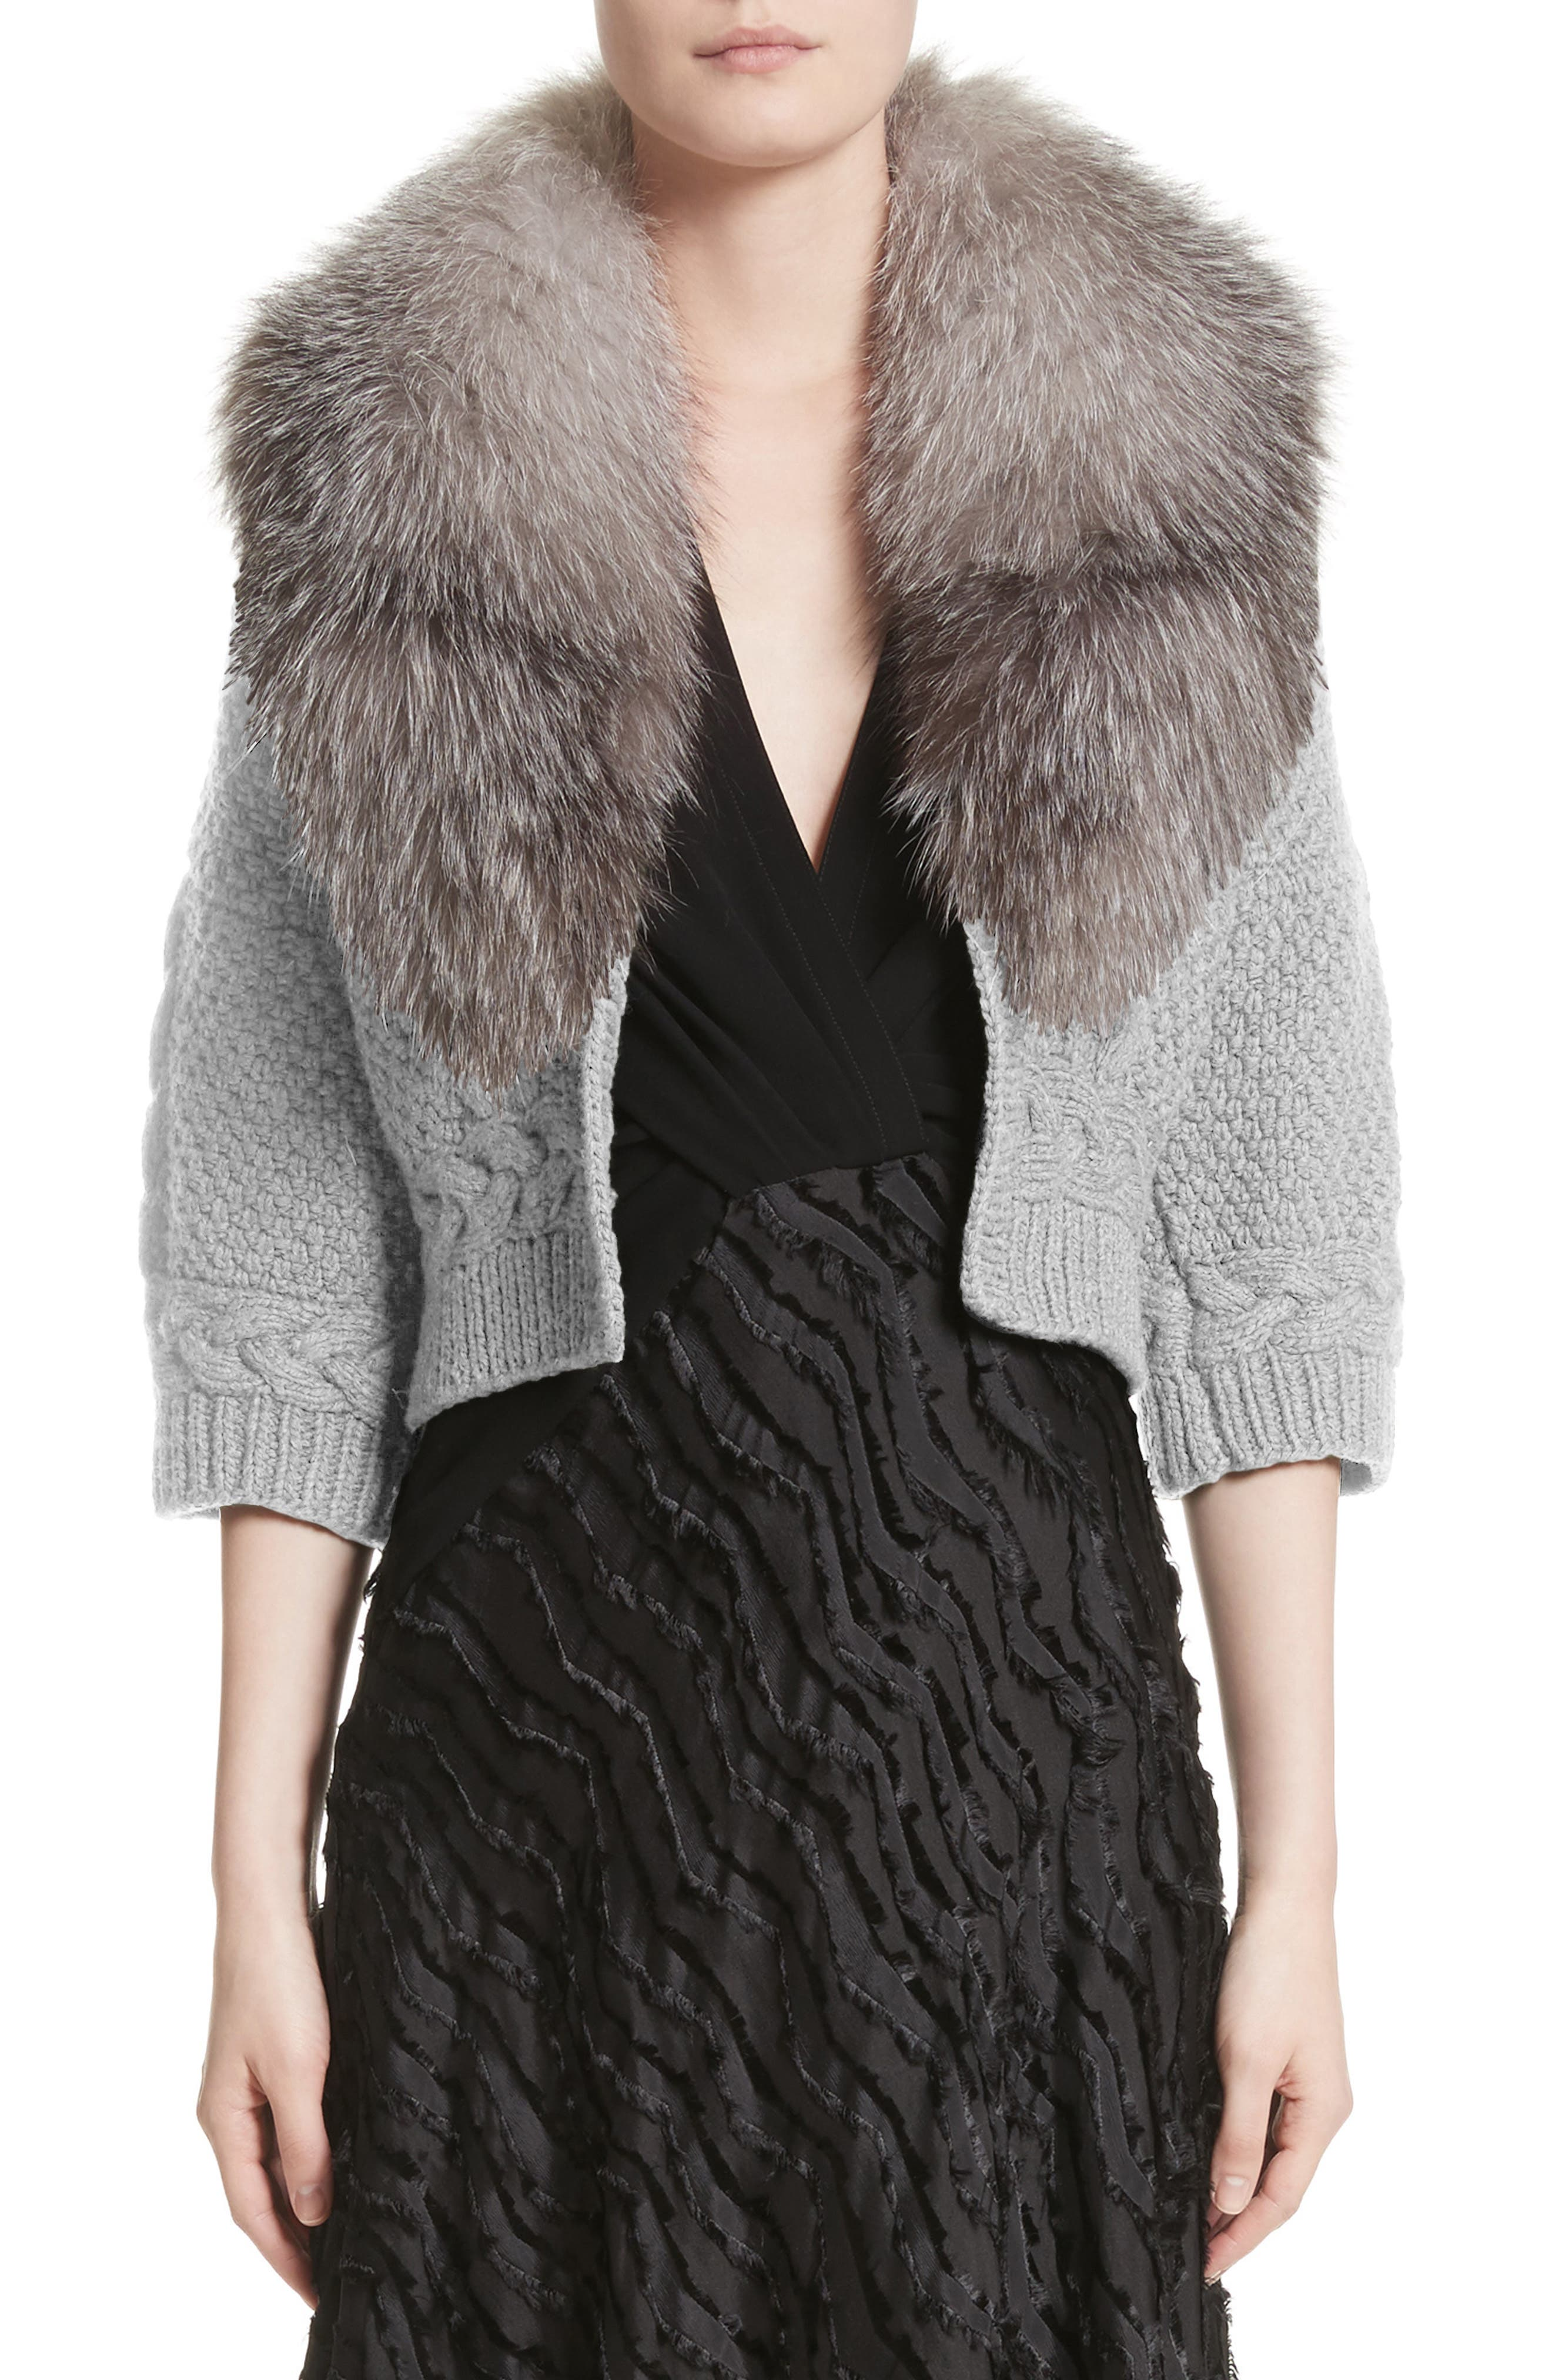 Alternate Image 1 Selected - Yigal Azrouël Merino Wool & Cashmere Knit Bolero with Removable Genuine Fox Fur Collar